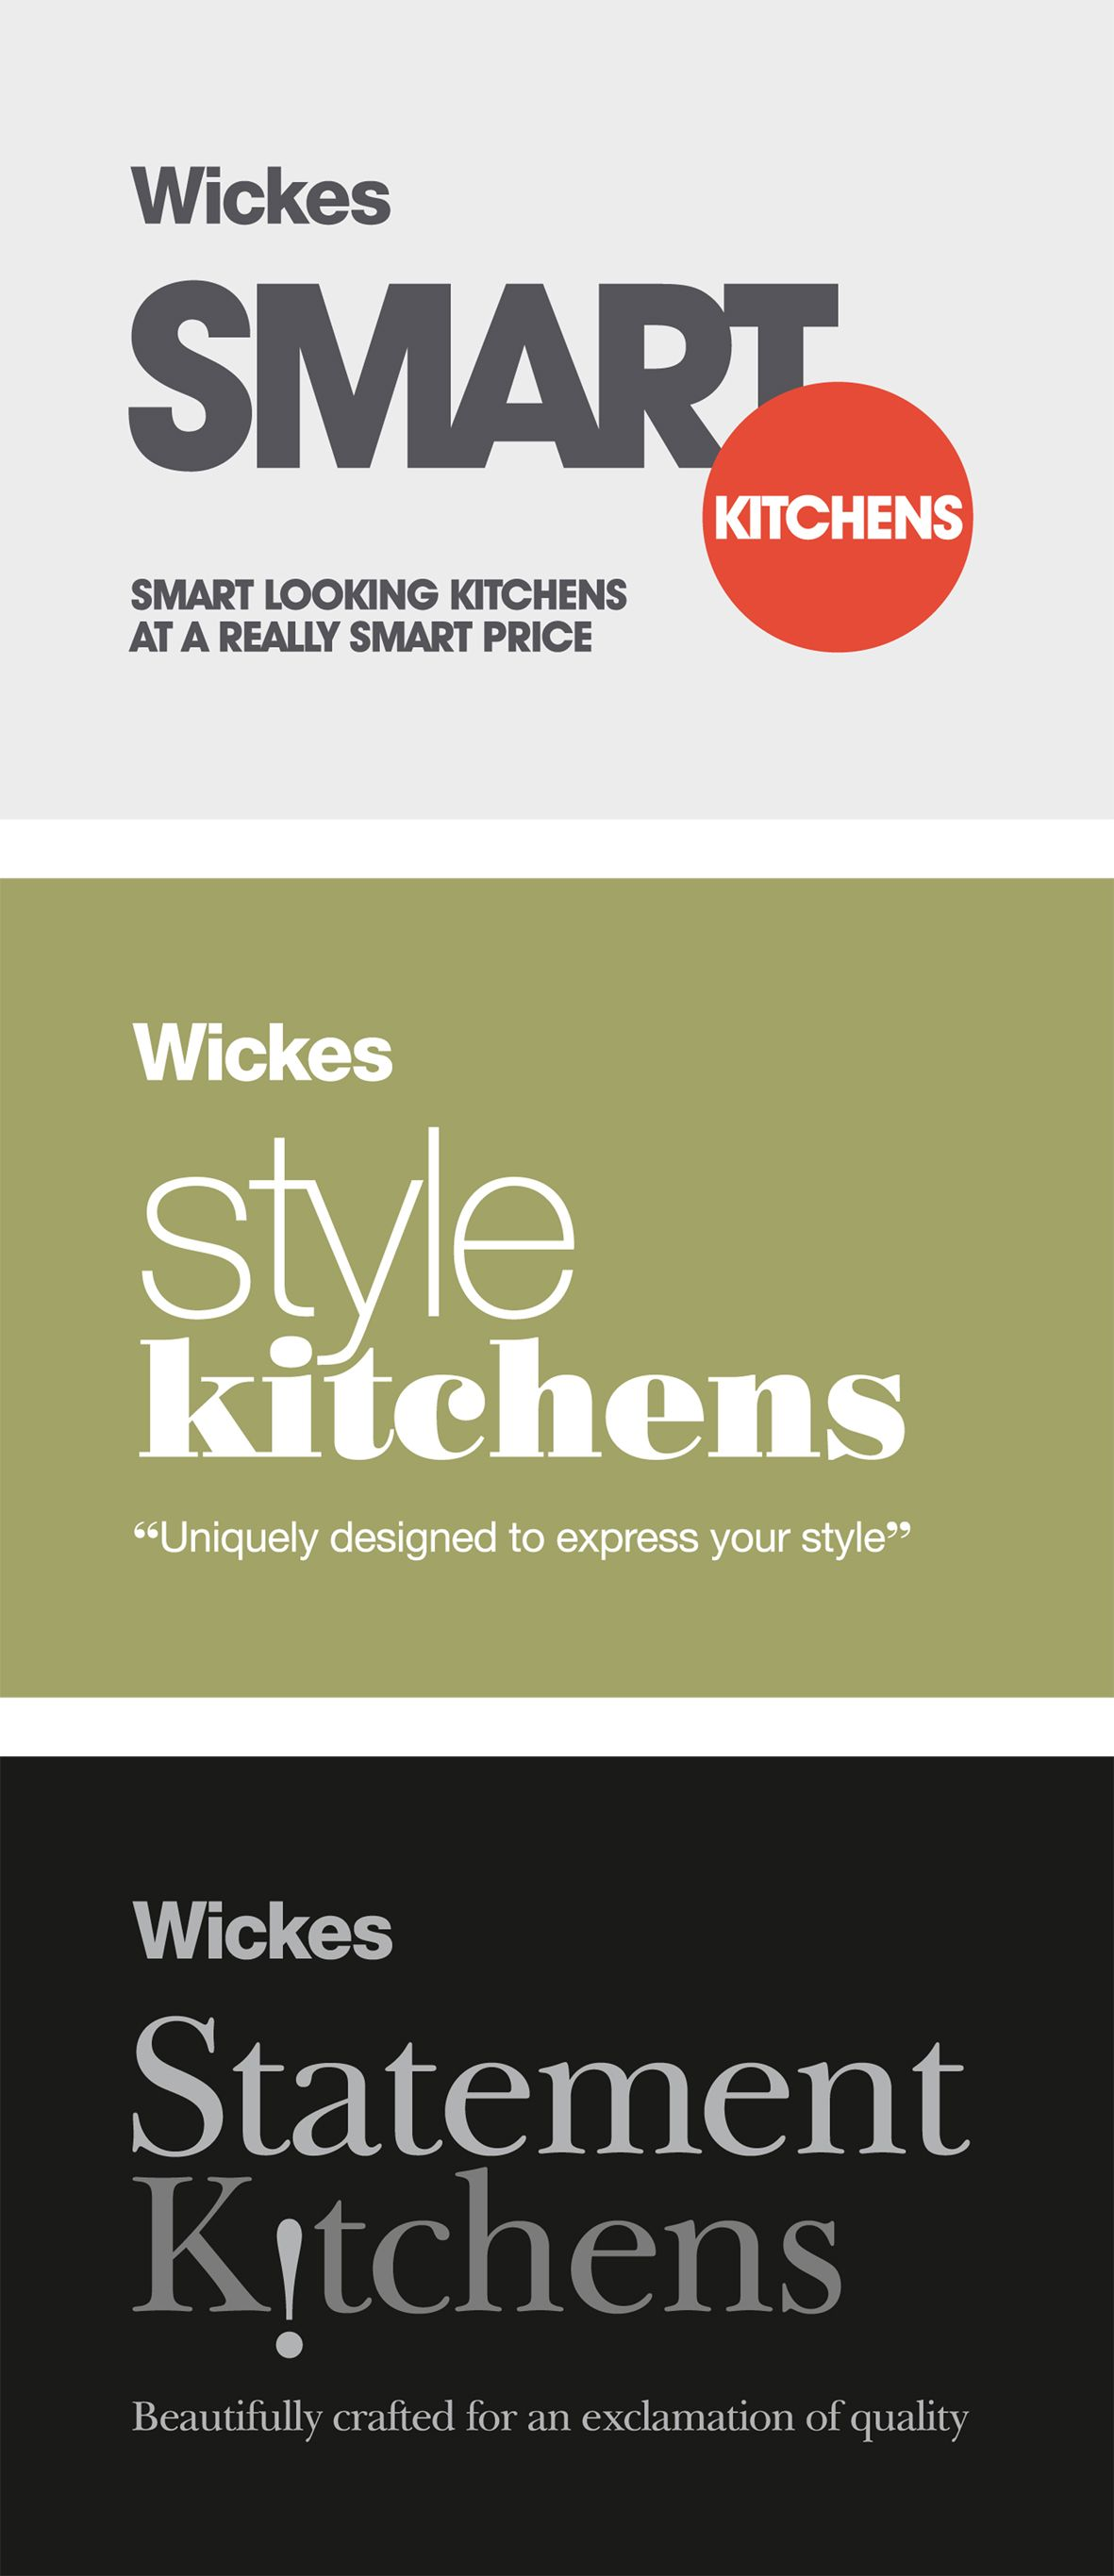 Wickes A Tier Branding Strategy To Create Good Better And Best